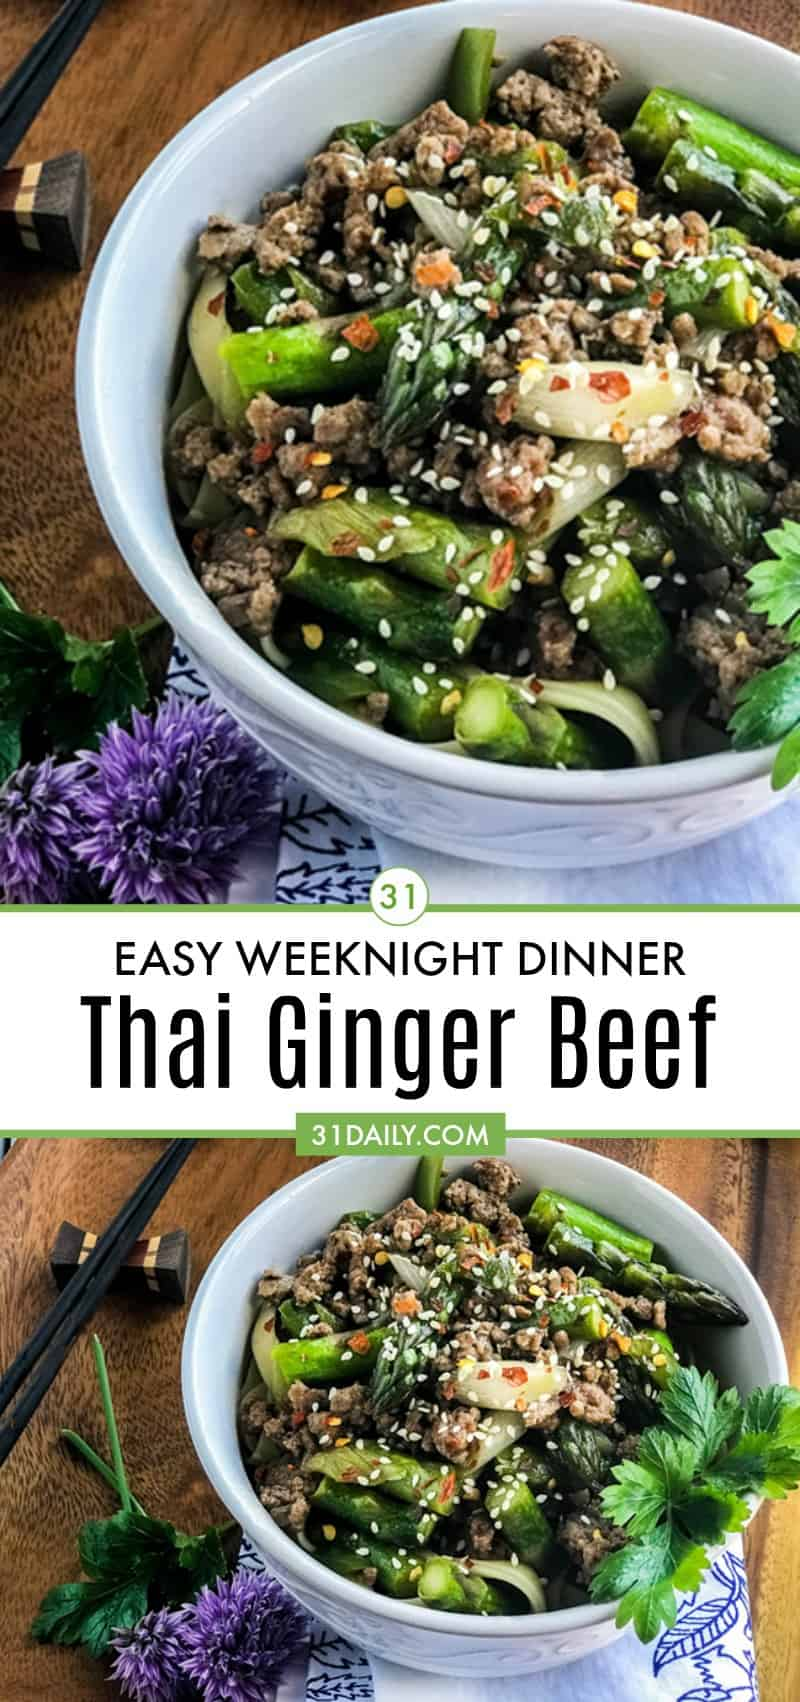 Thai Ginger Beef: a Simple and Easy Weeknight Meal   31Daily.com